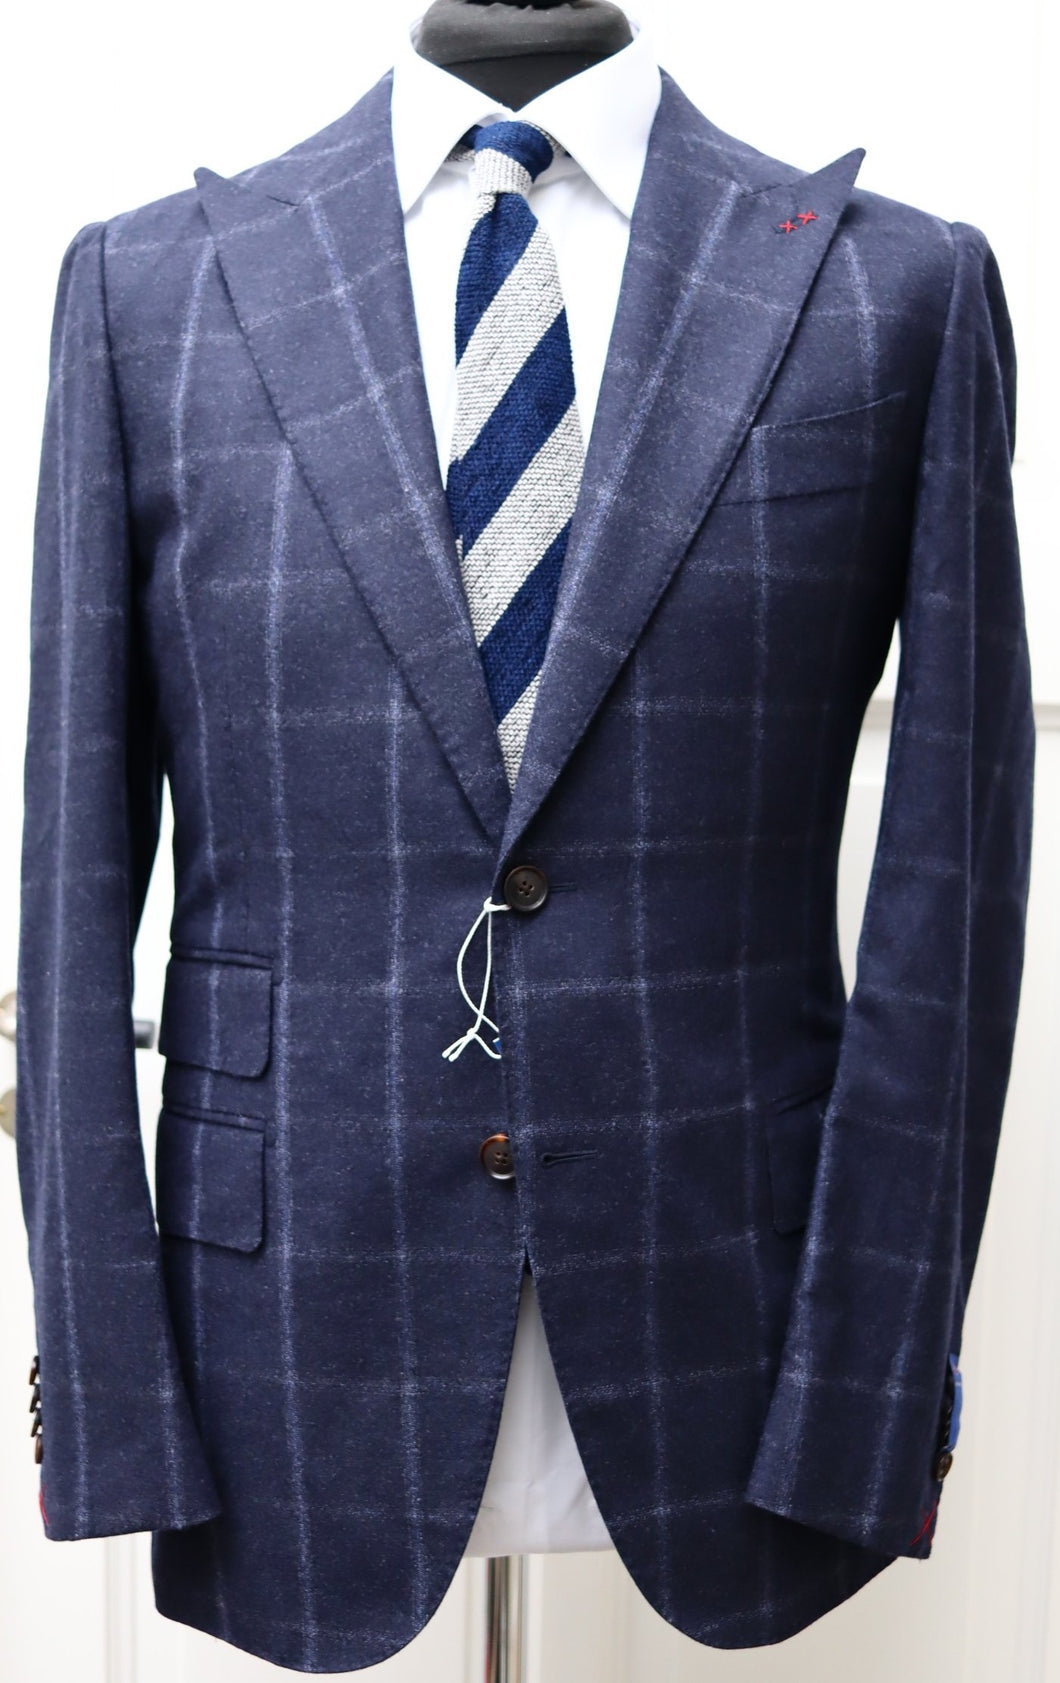 New With Tags SUITSUPPLY JORT Blue Check 100% Wool Super 130s Suit - Size 38R and 40R